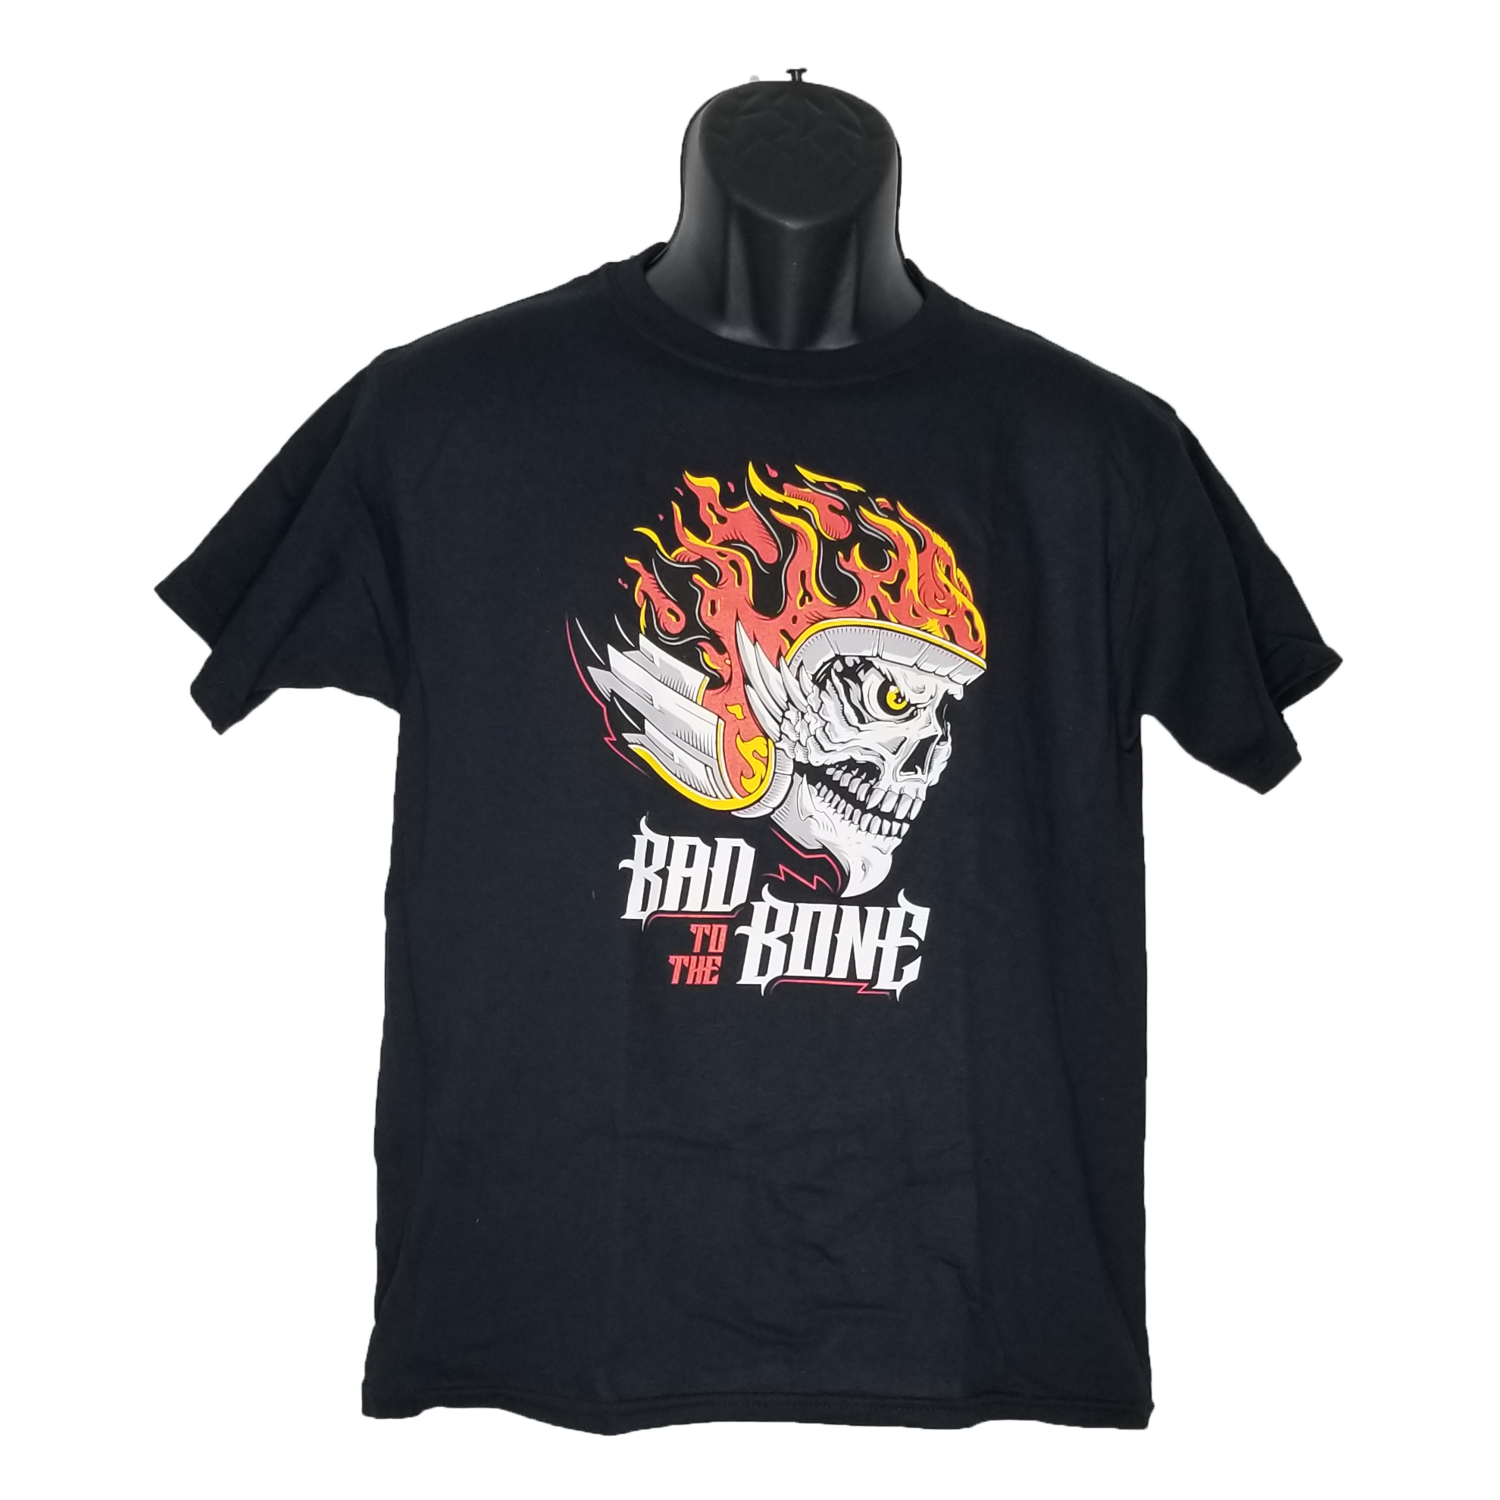 Youth Bad to the Bone Tee